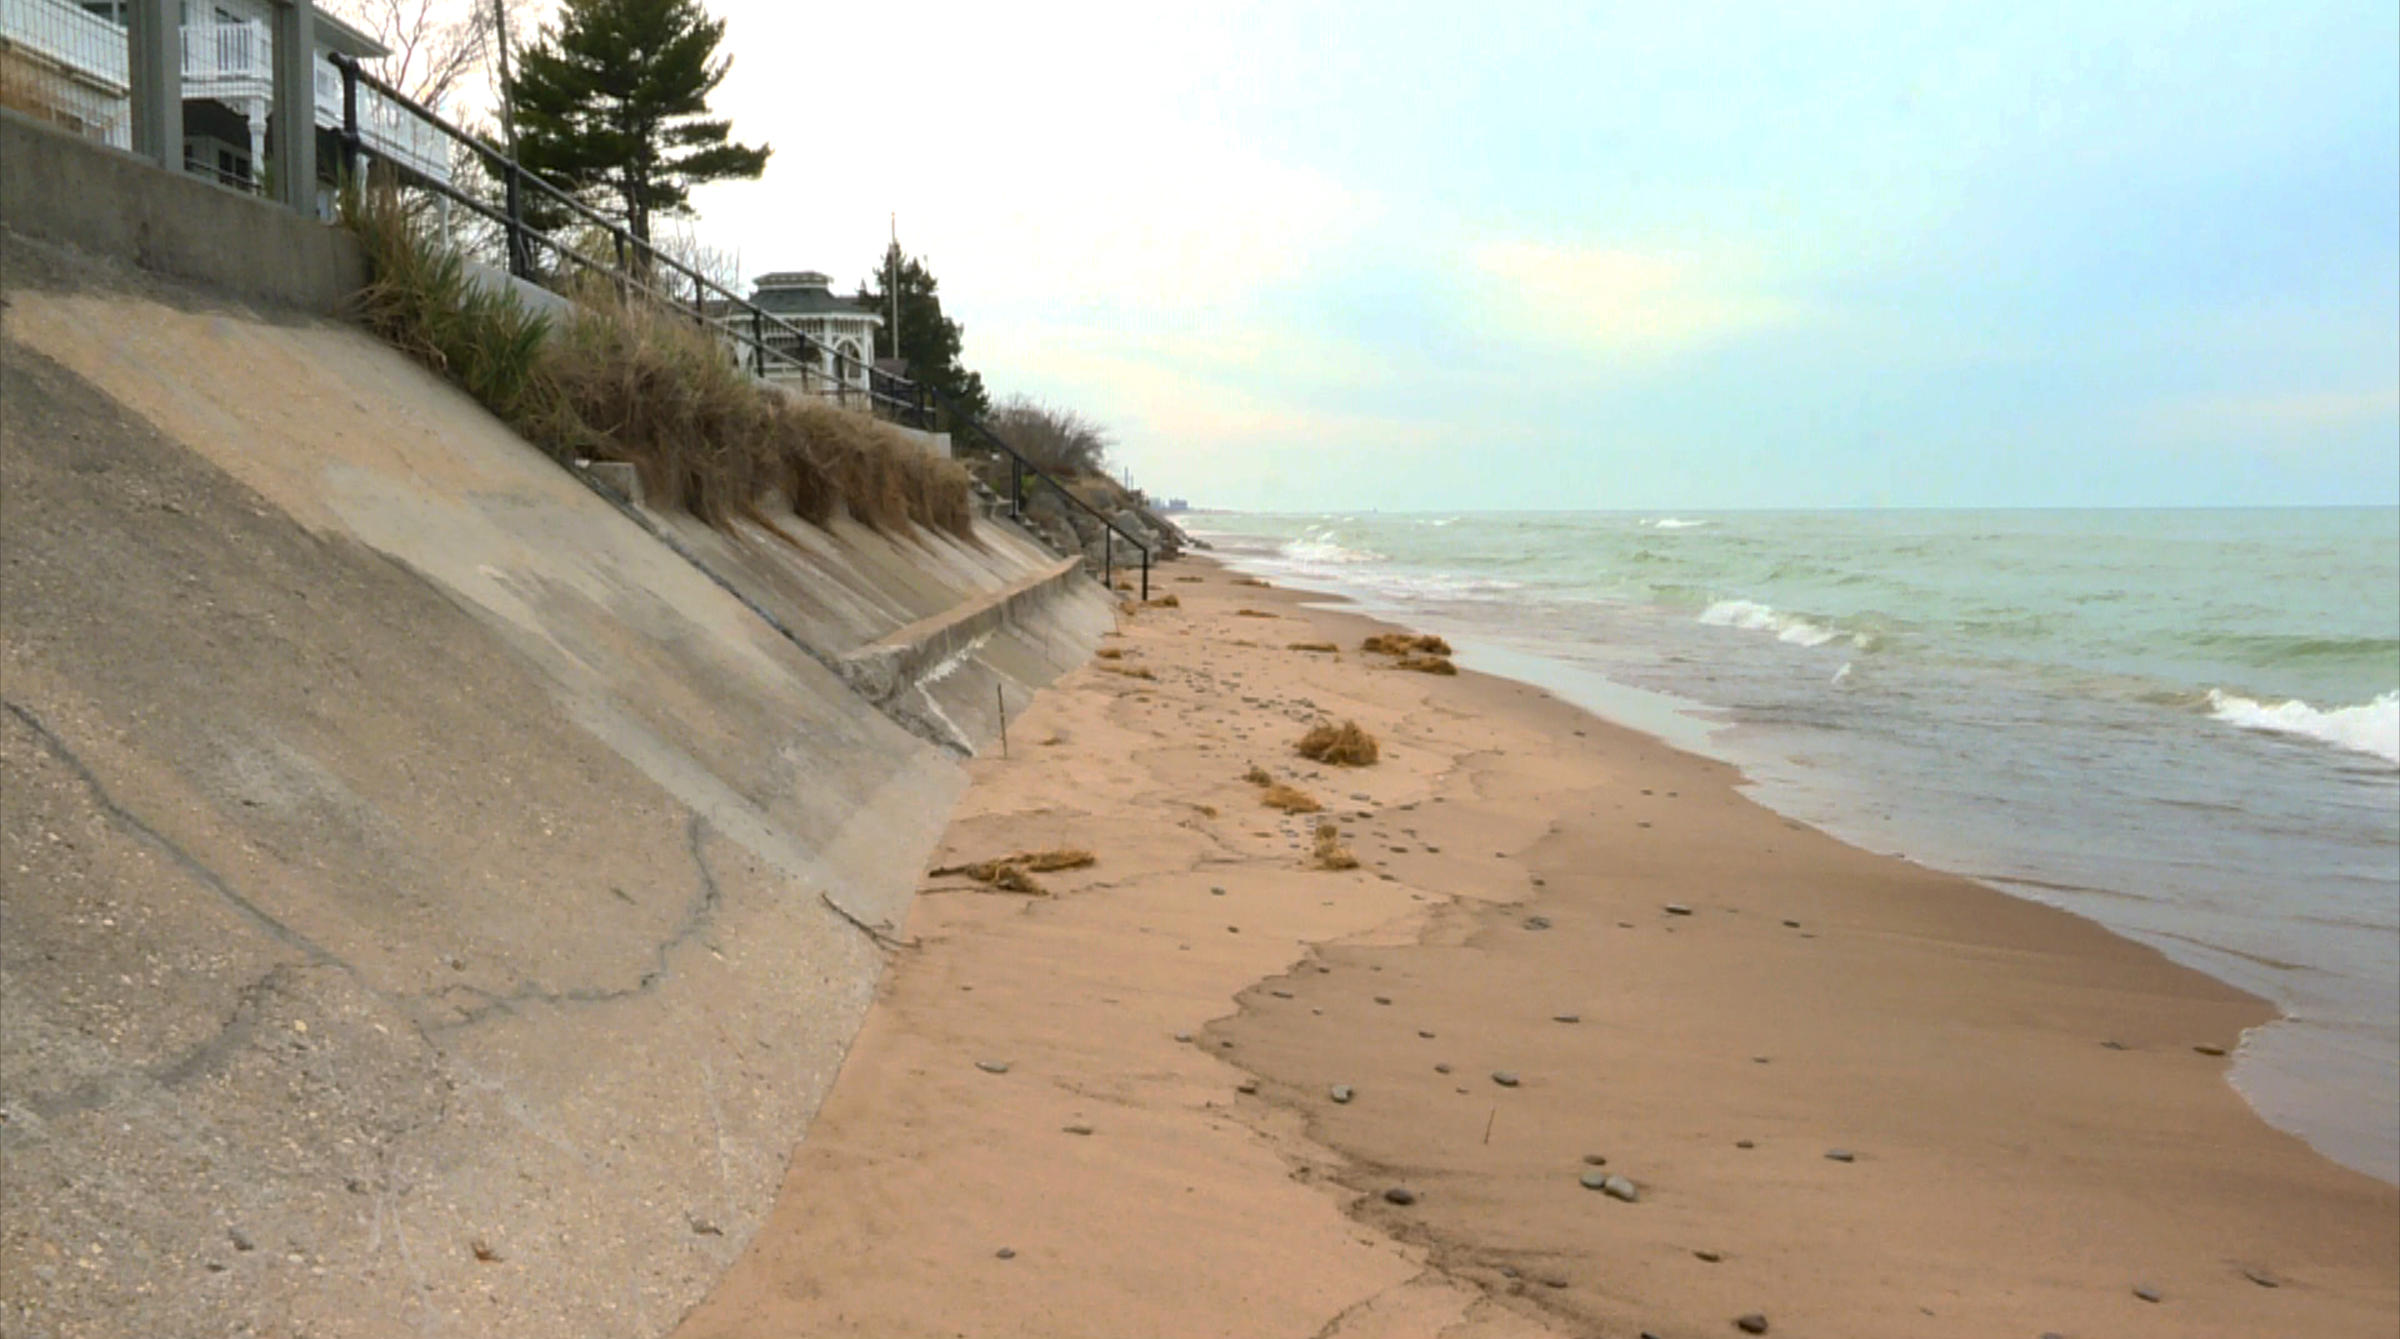 As Lake Michigan S Erodes Laporte Residents Battle Over Beach Access